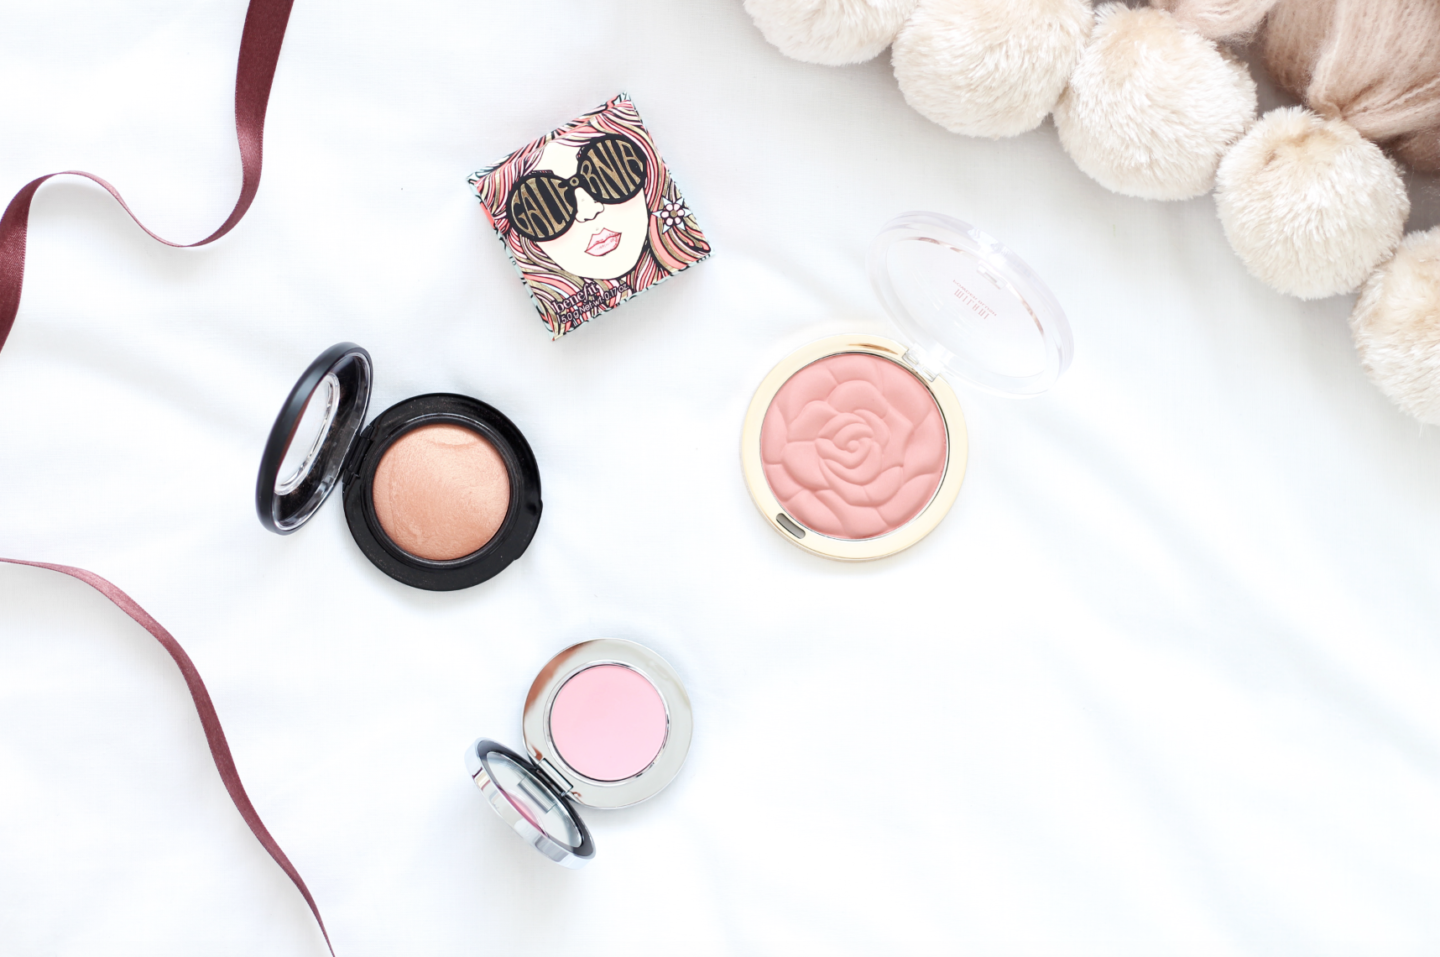 THE SPRING BLUSH EDIT